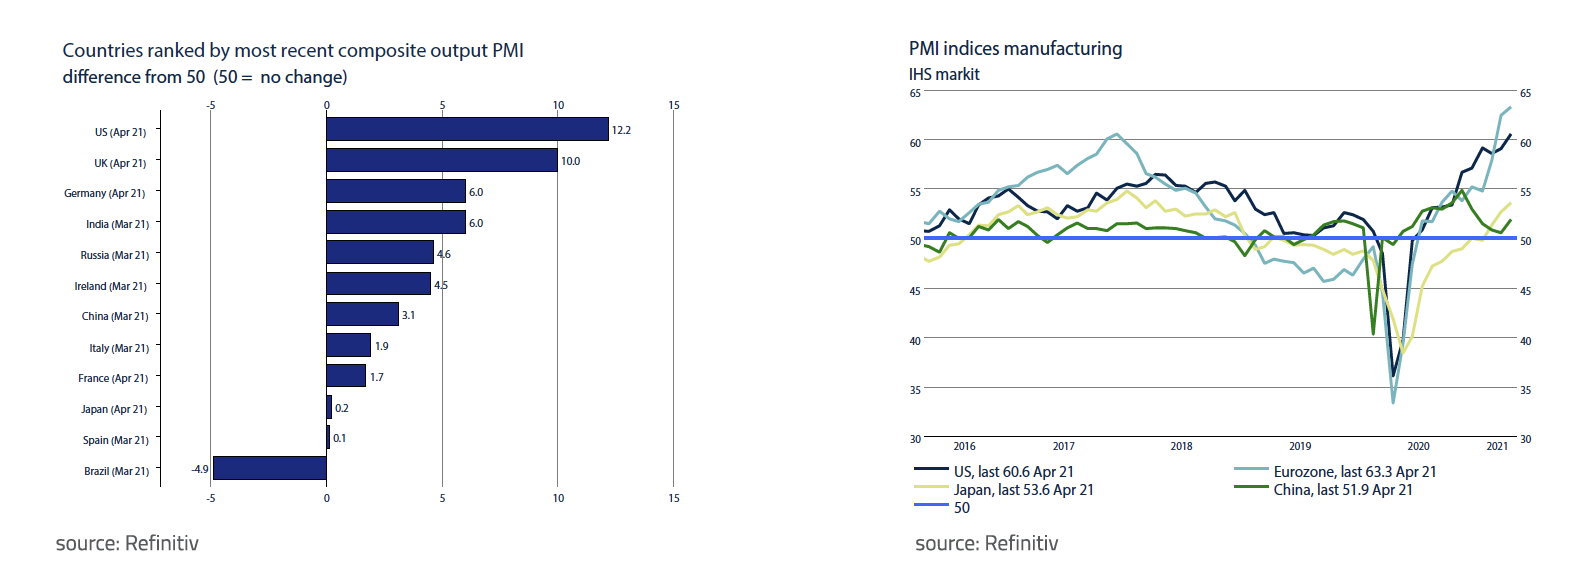 Countries ranked by most recent composite output PMI